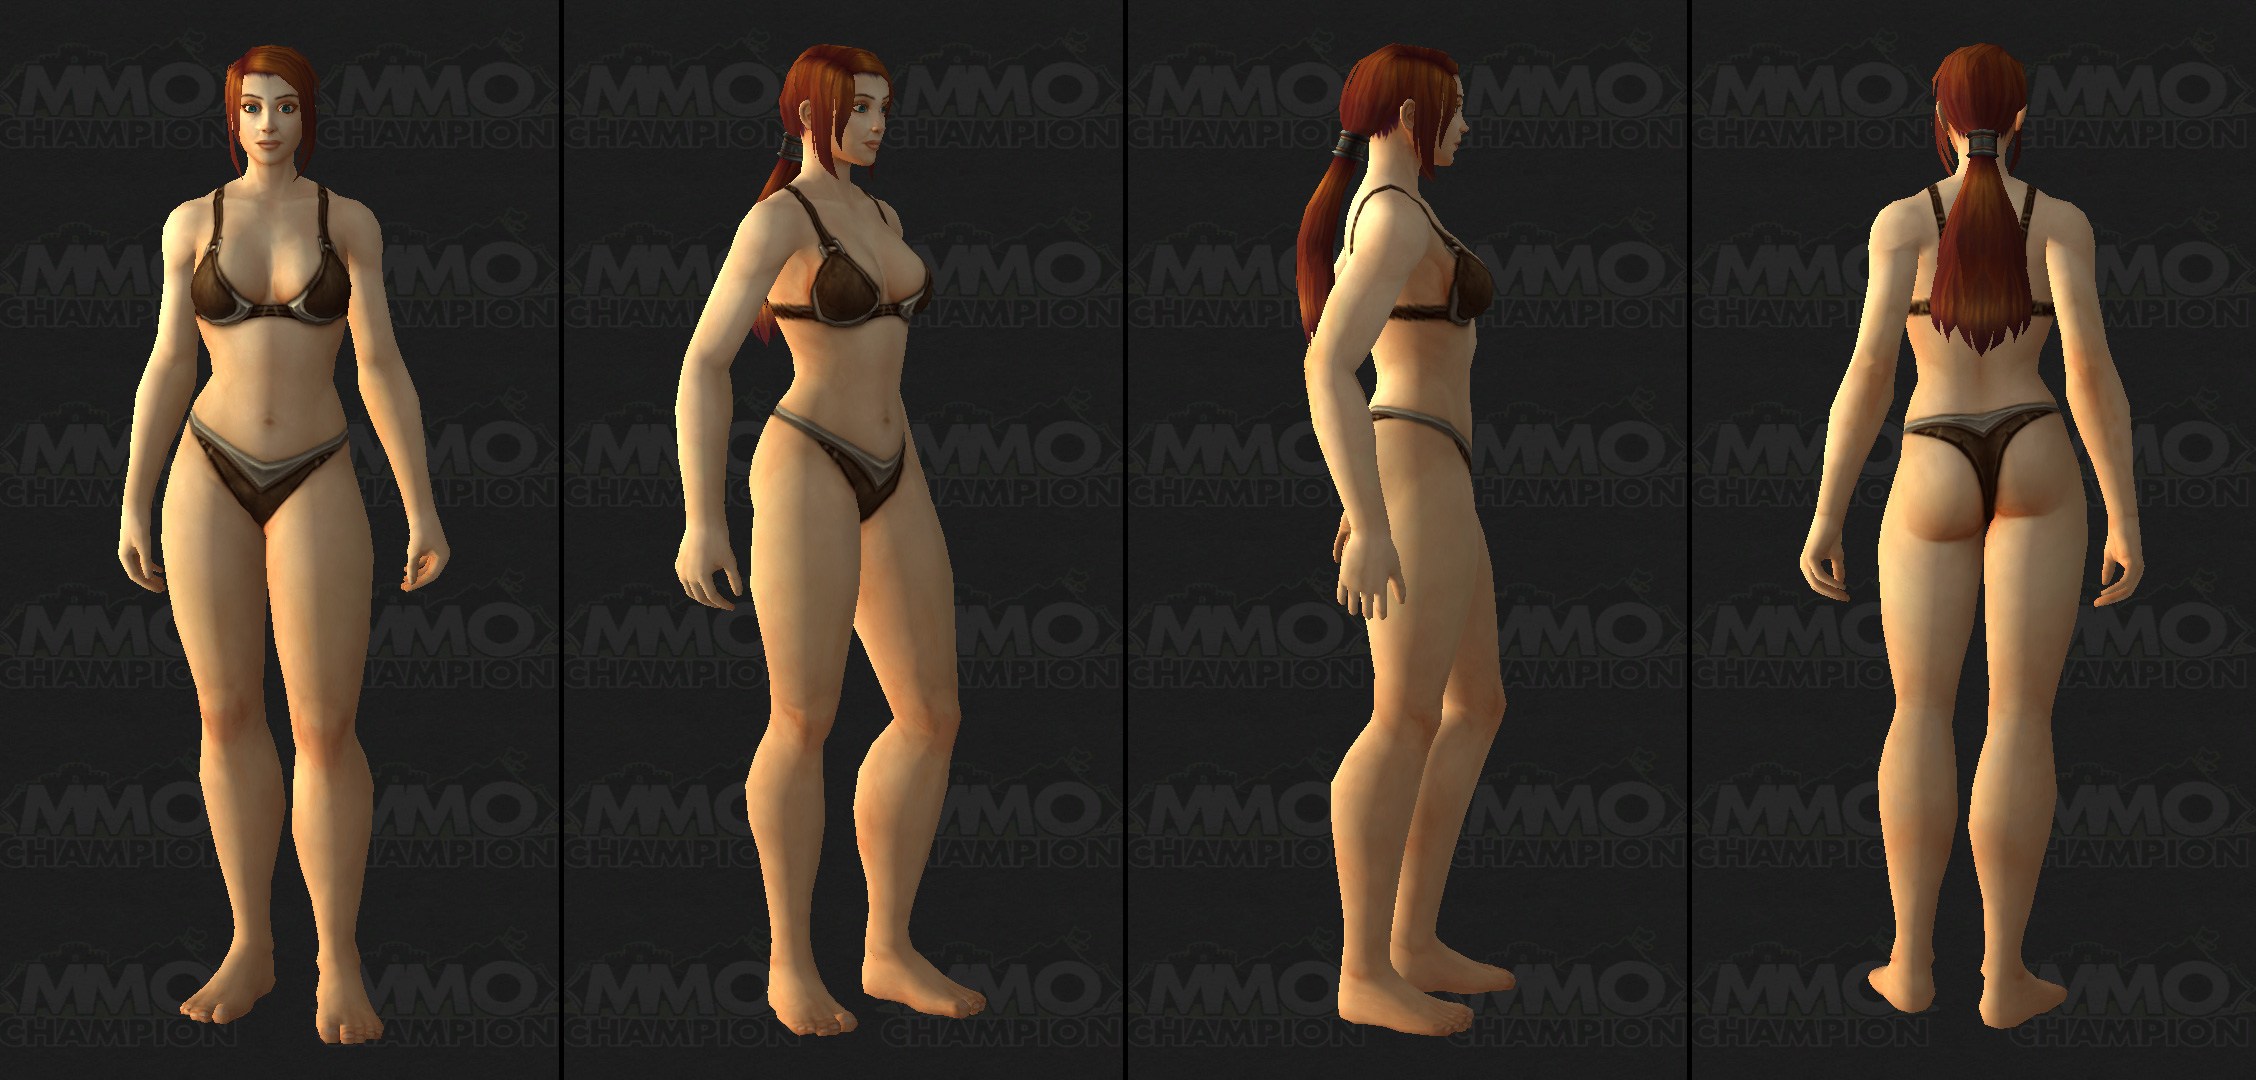 New wow skins for humans wow naked images